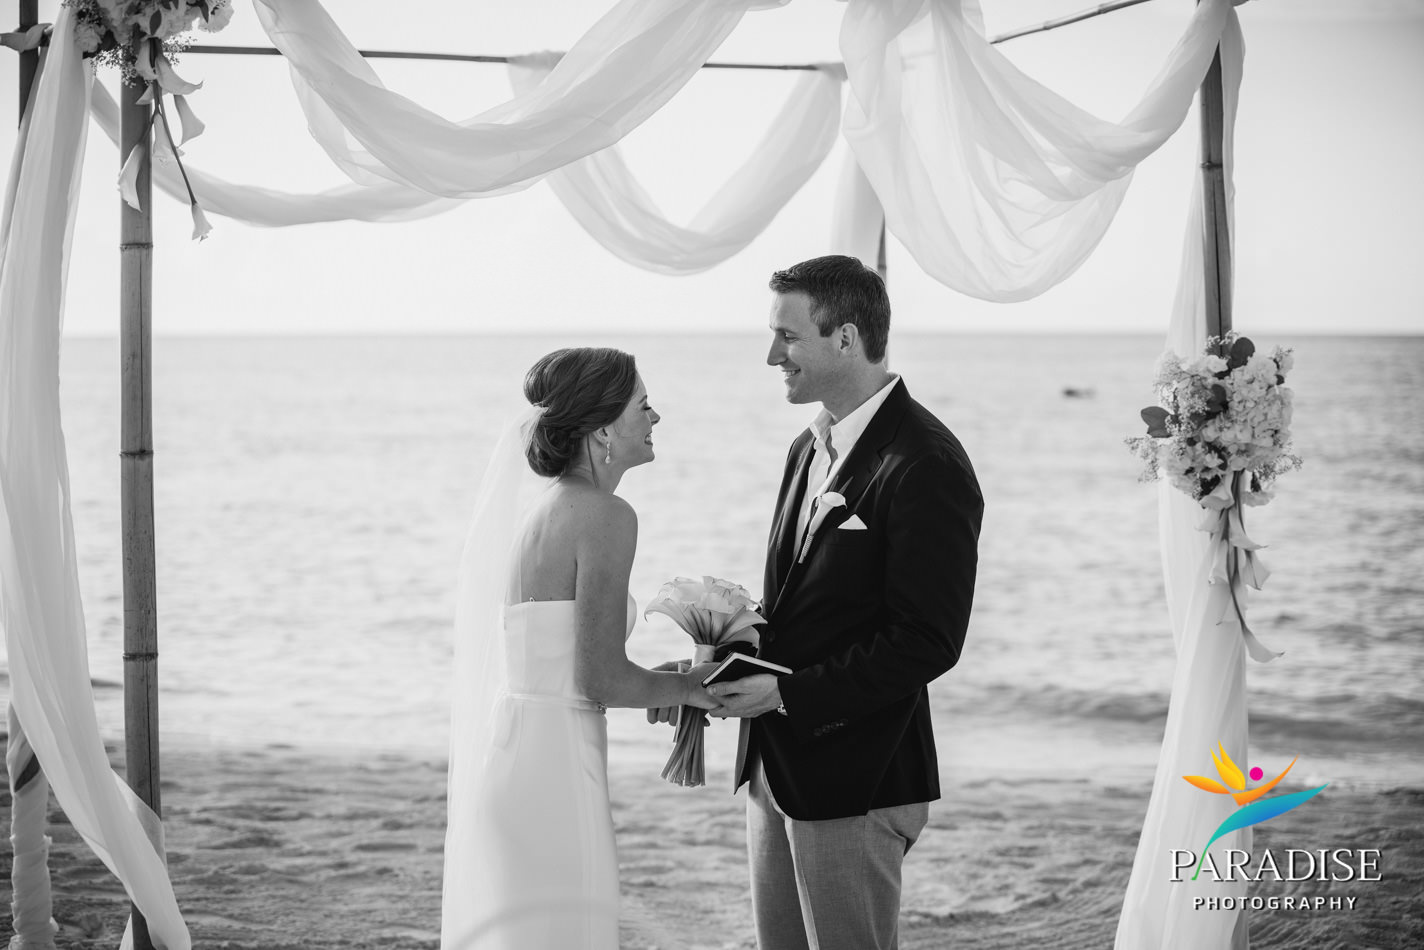 008-turks-and-caicos-destination-wedding-beach-caribbean-photography-photographer-pic-pictures-bride-groom-grace-bay-gansevoort-elopement